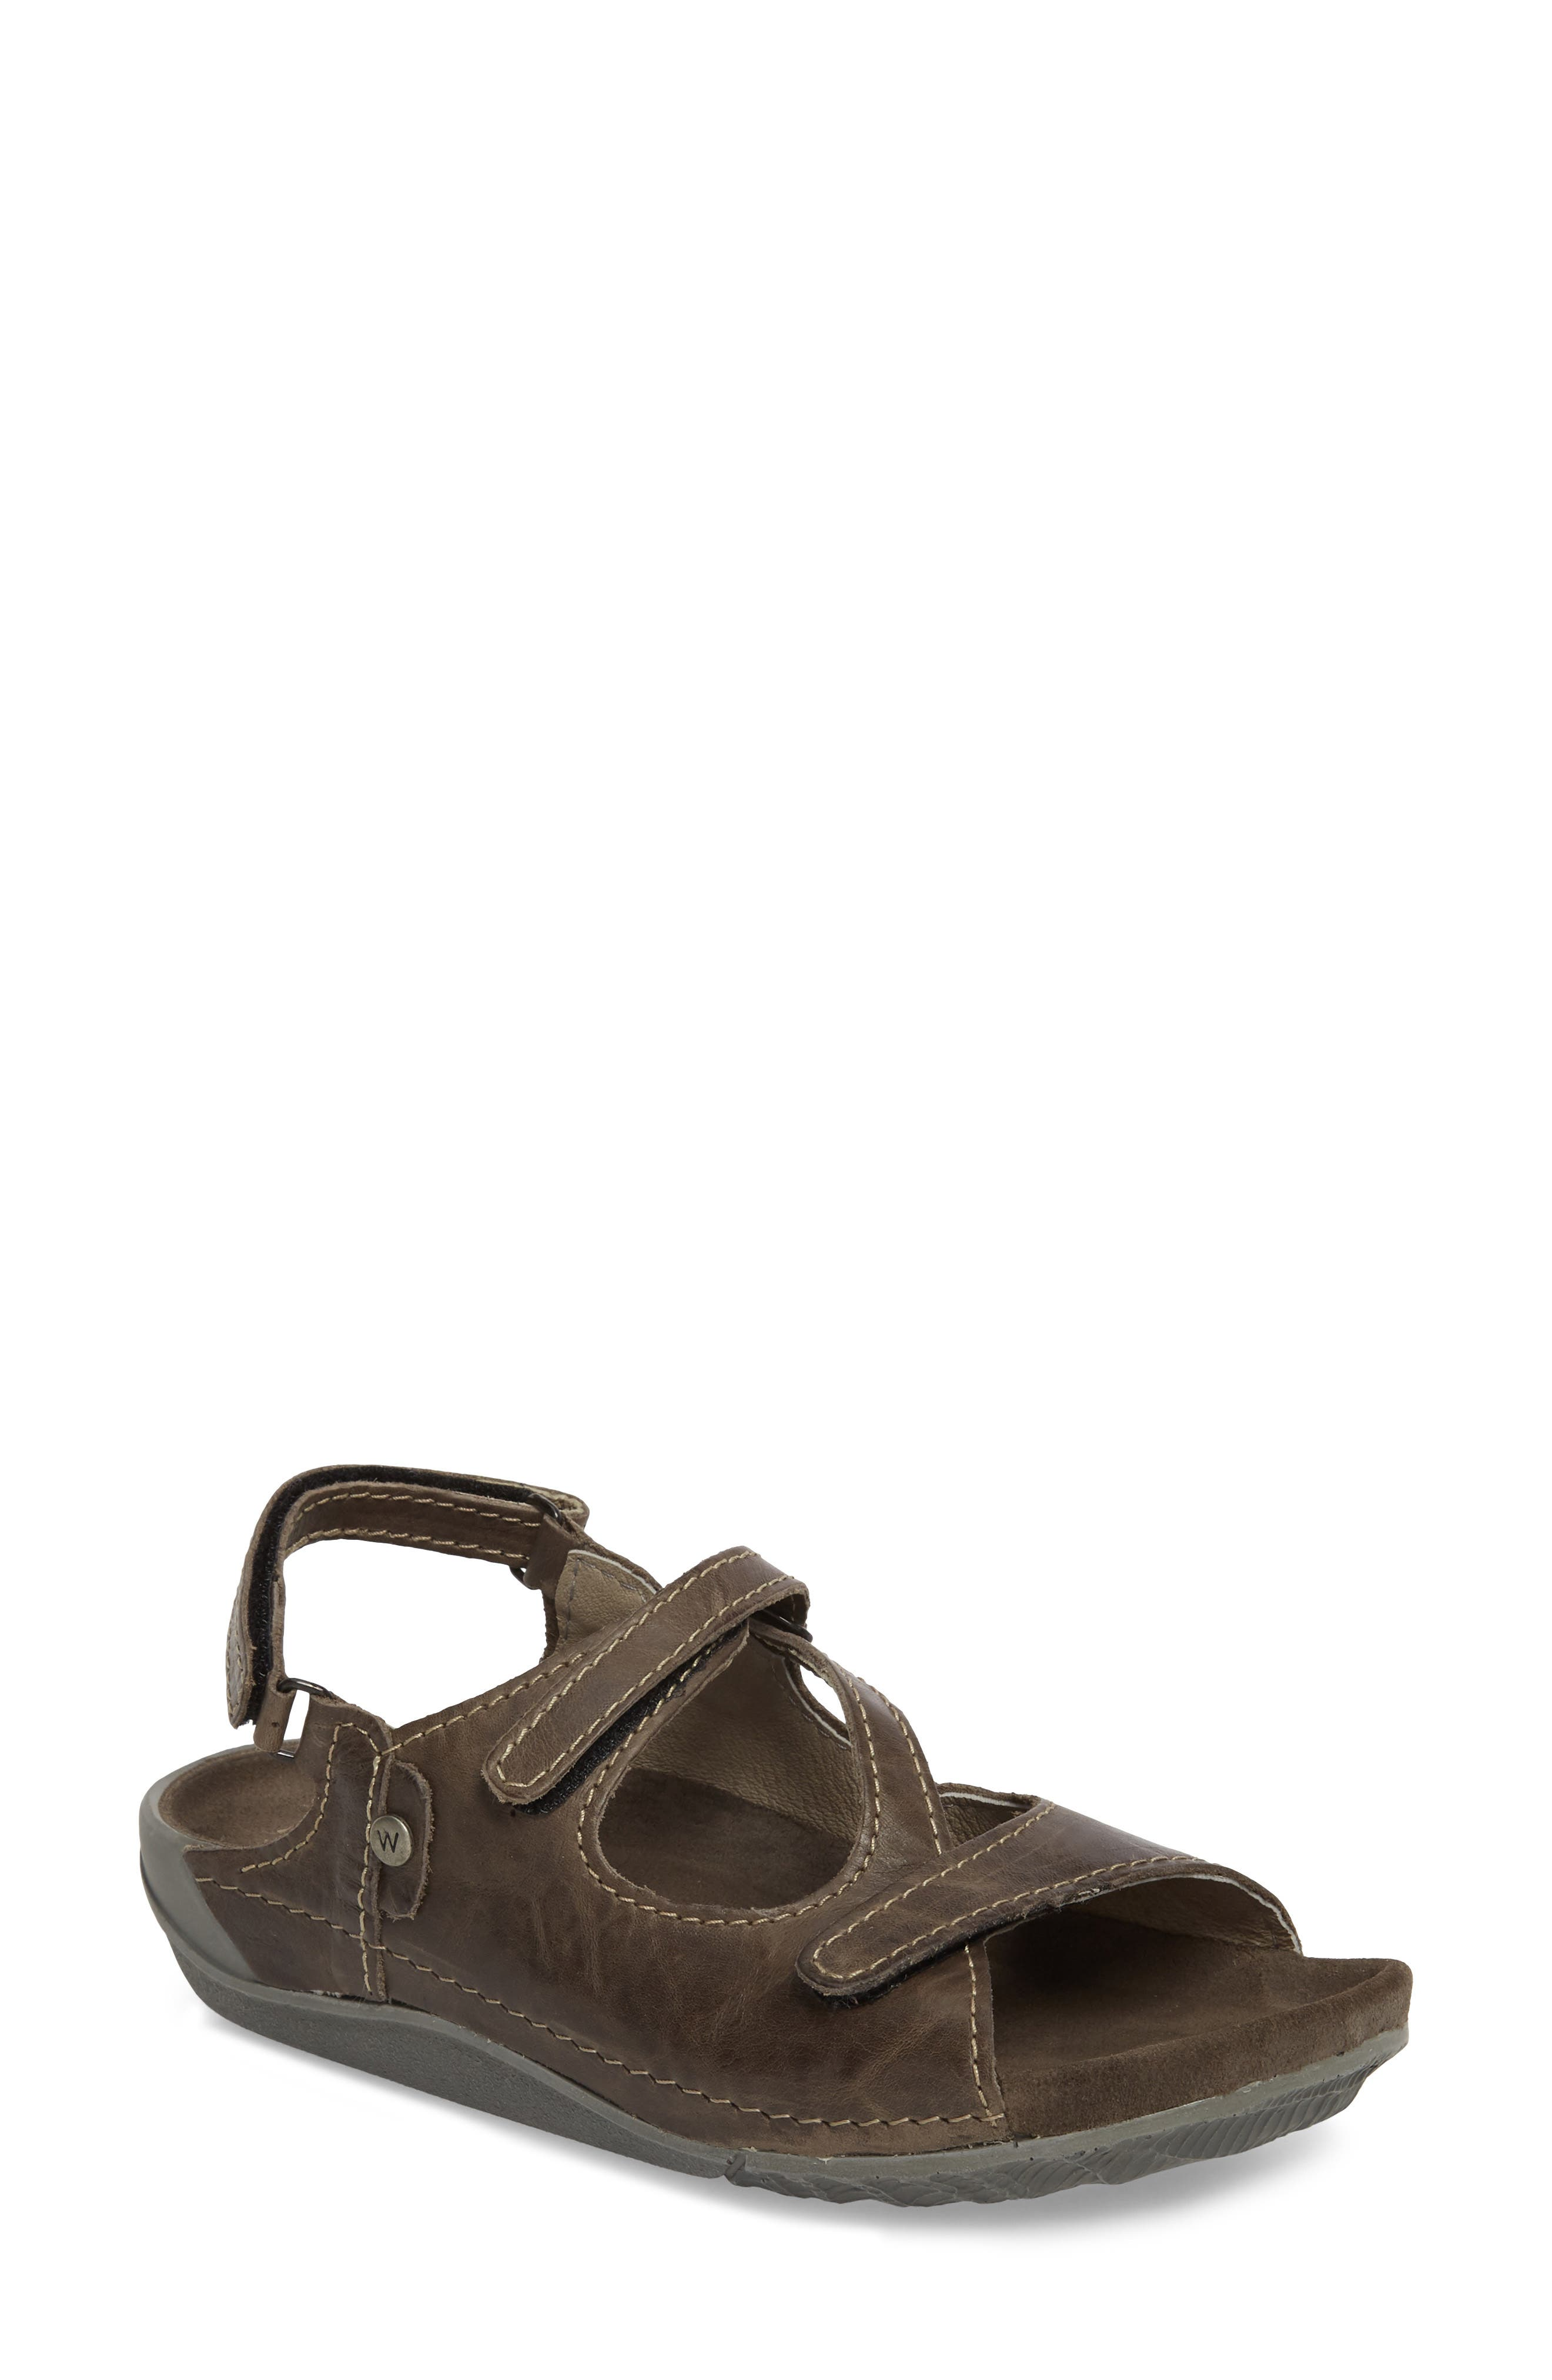 WOLKY Leif Sandal, Main, color, SLATE LEATHER